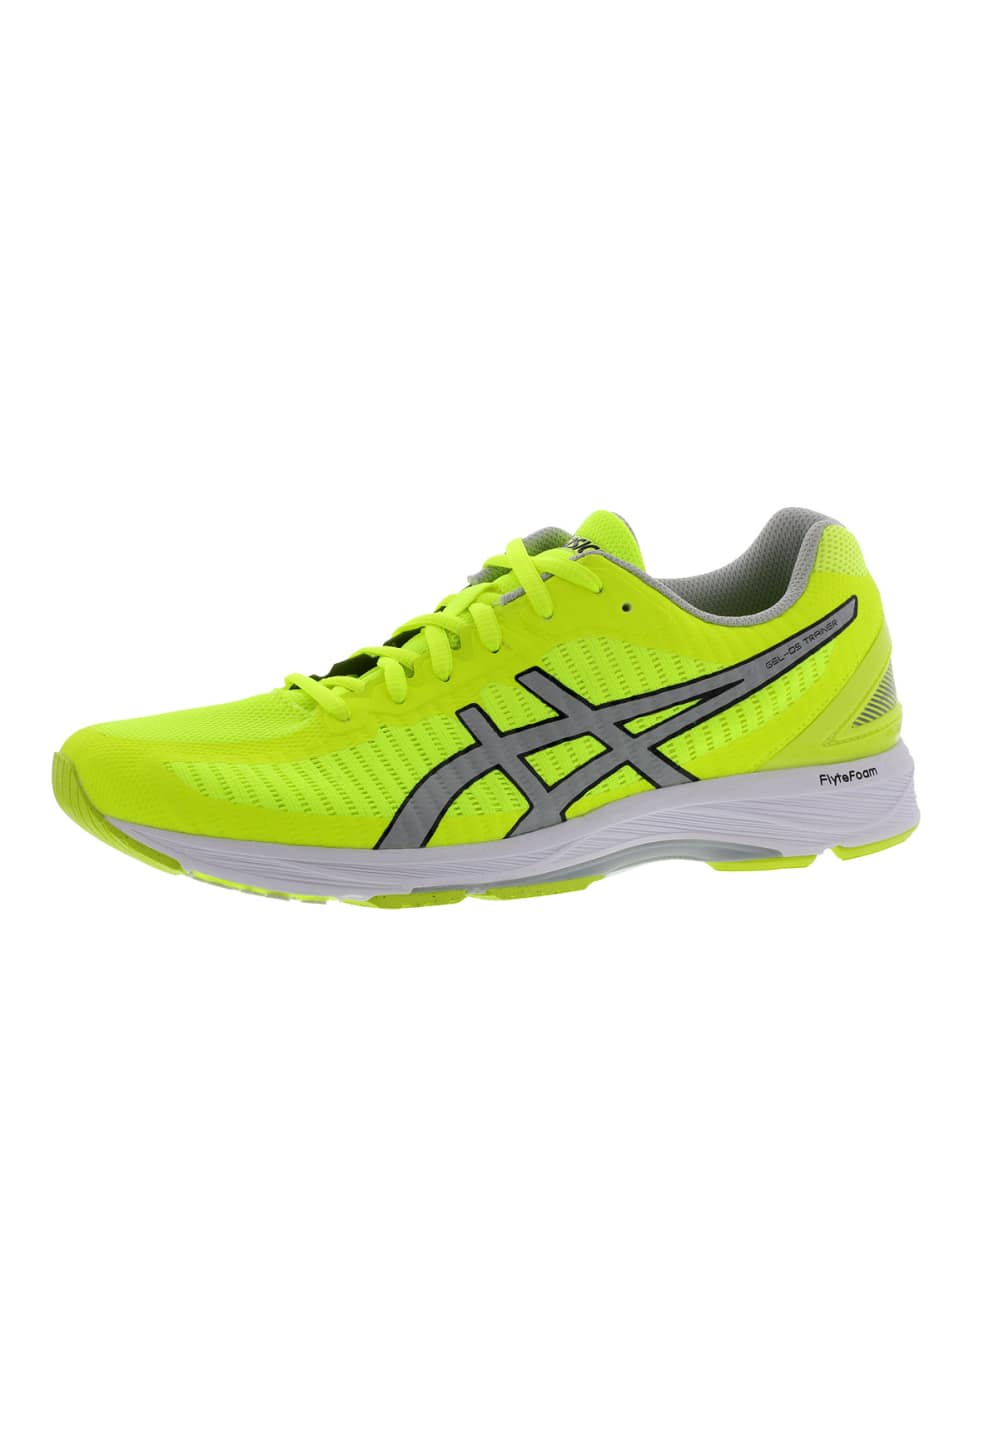 5f3a42f87c09 Next. -50%. This product is currently out of stock. ASICS. GEL-DS Trainer 23  - Running ...